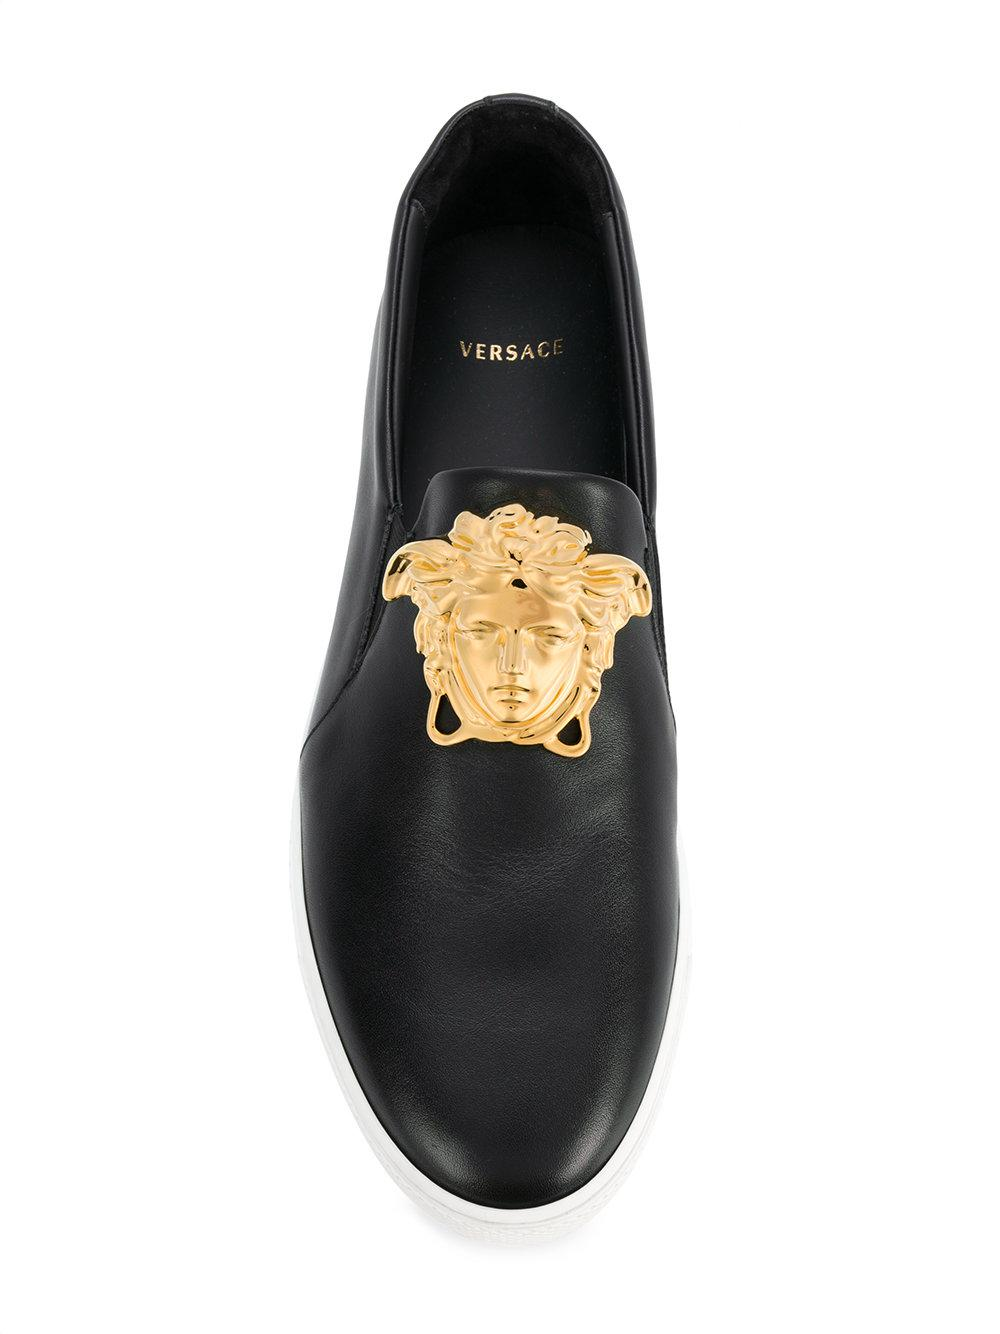 f4379b0f VERSACE Black Medusa Patent Leather Sneakers 725 These black